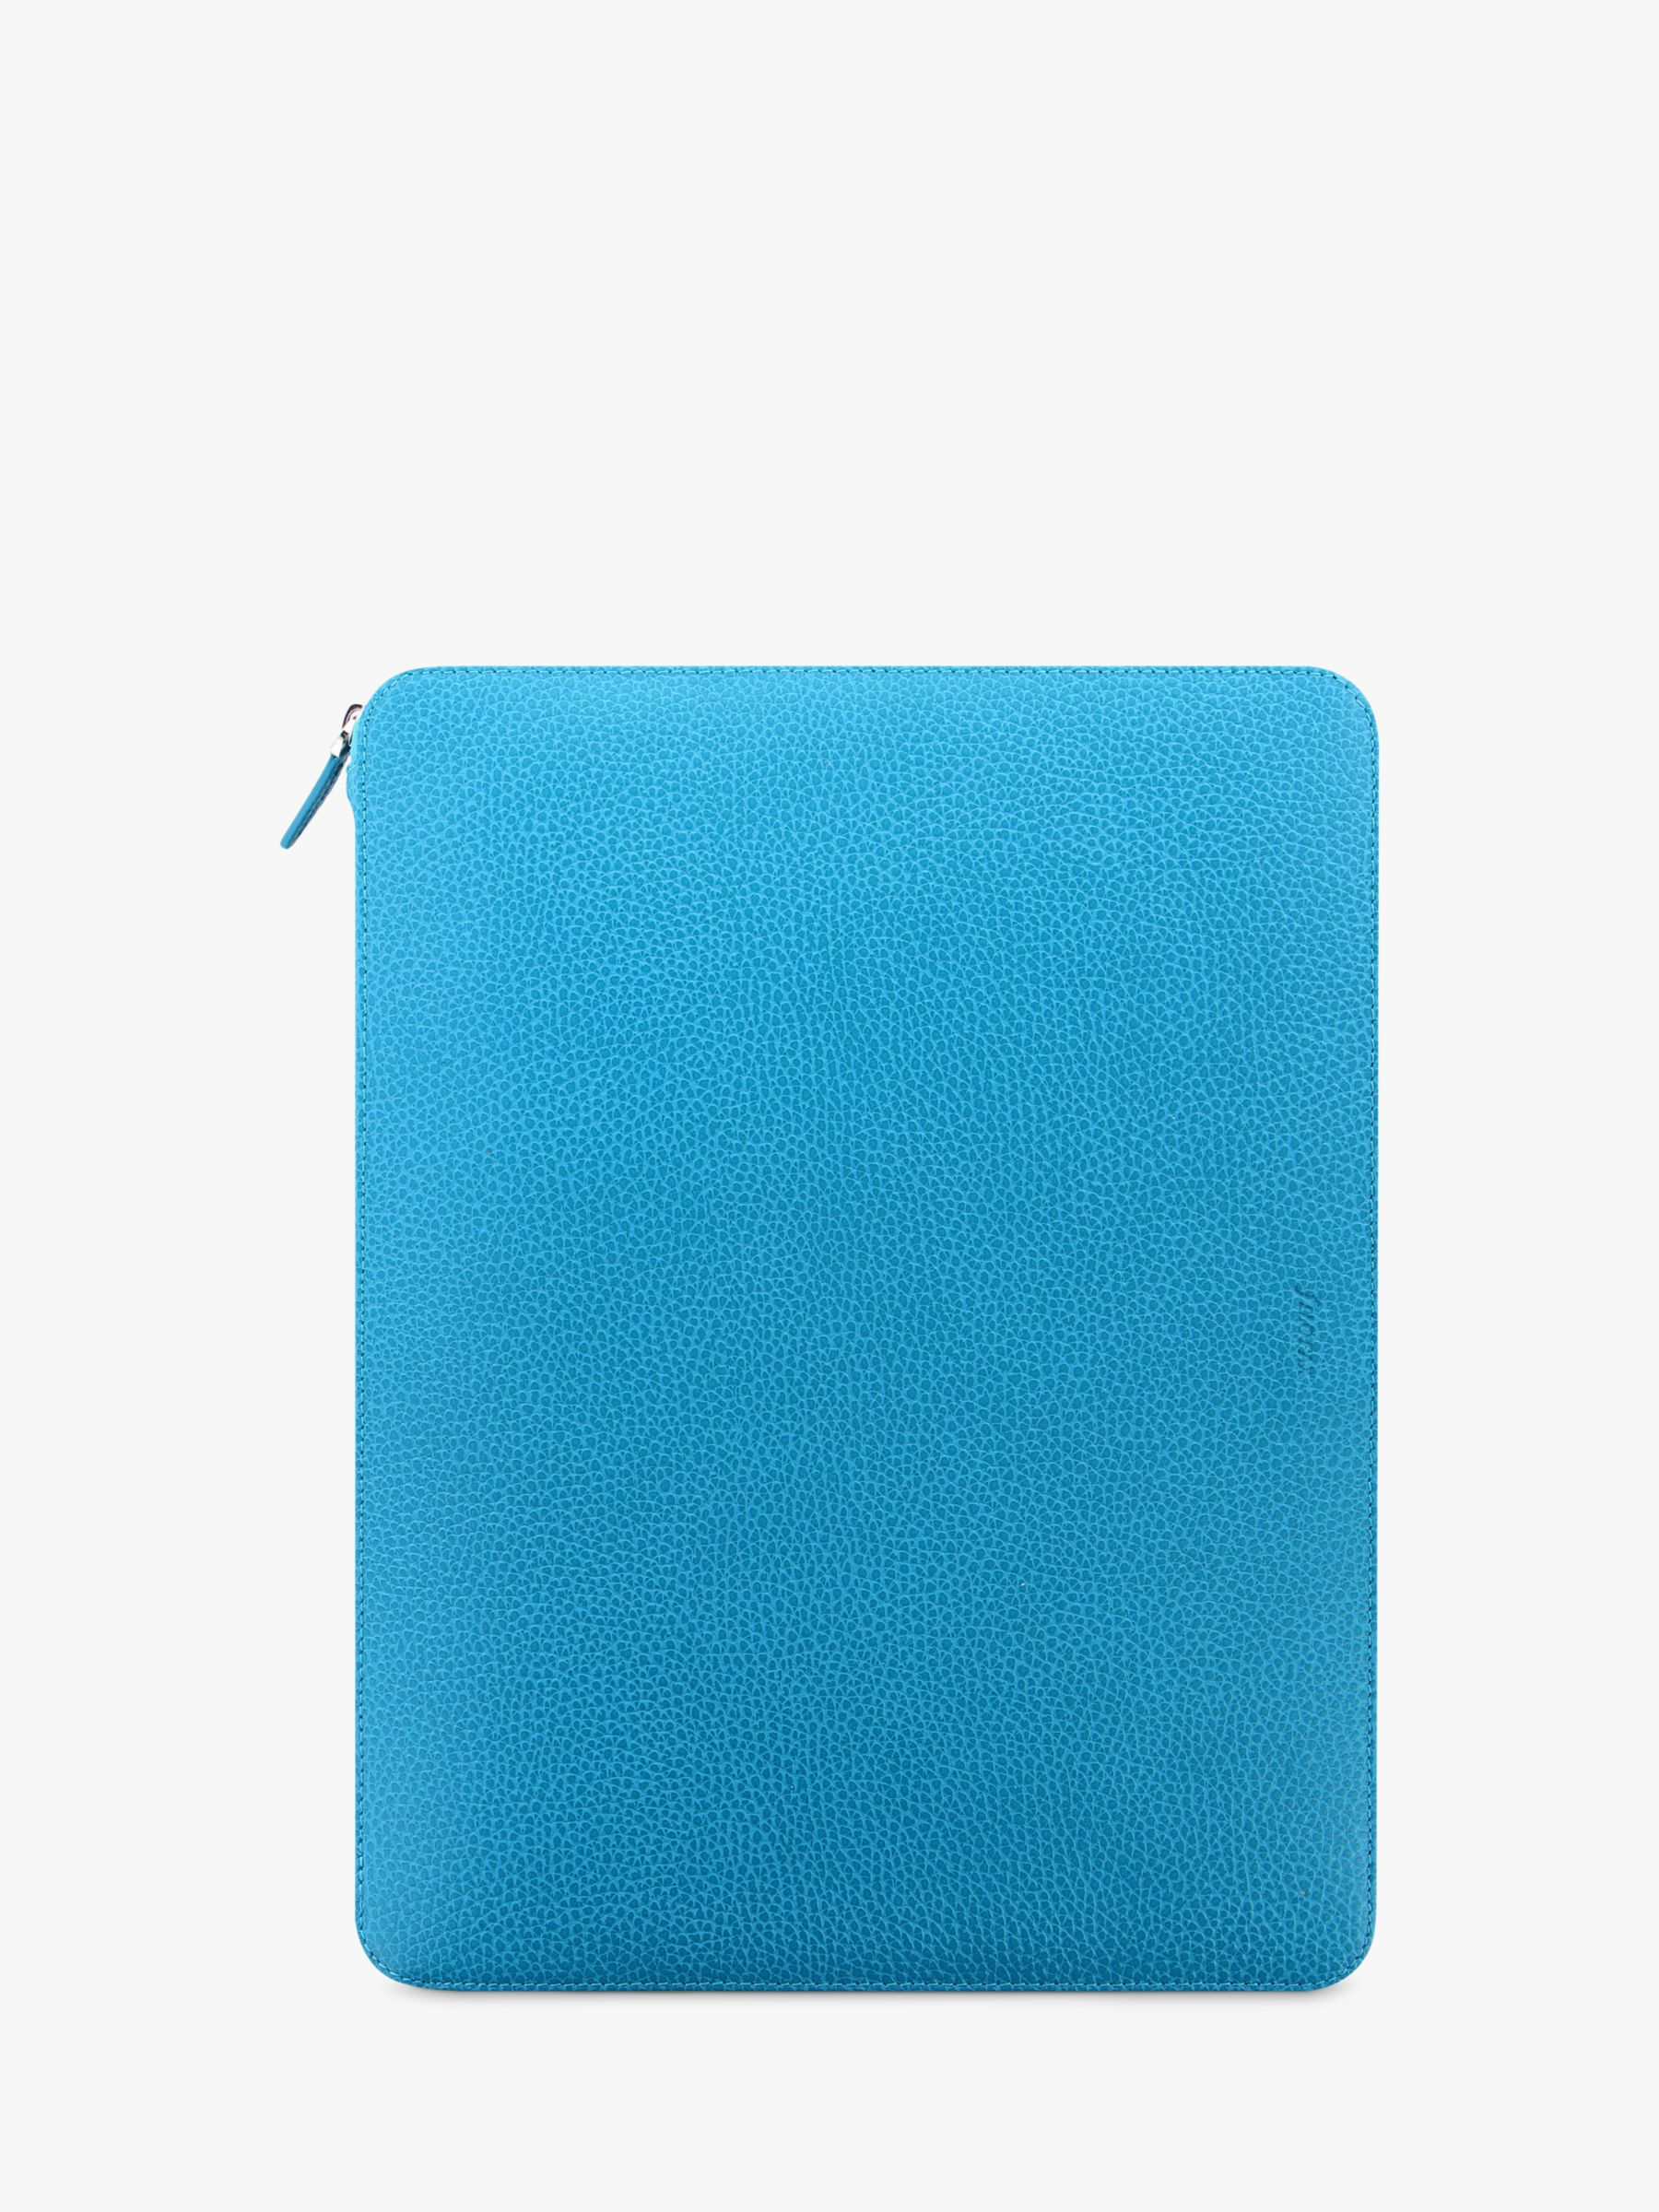 Filofax Filofax Finsbury A4 Leather Zip Folio